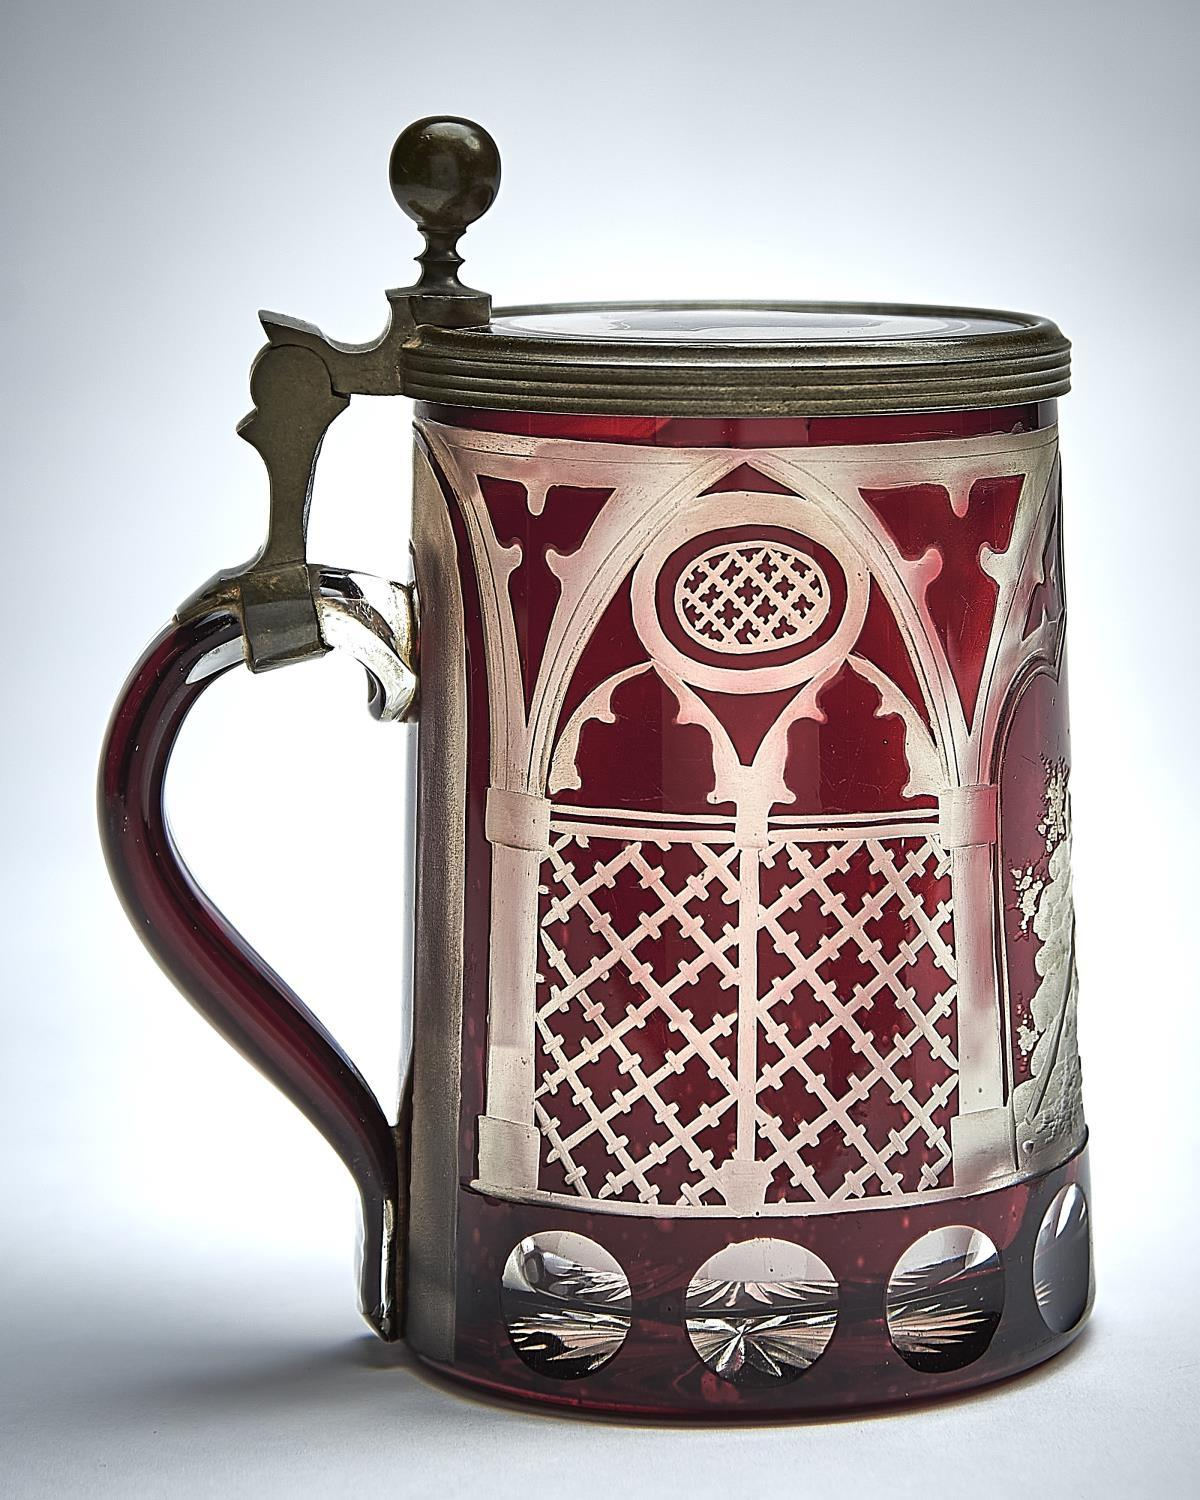 A BOHEMIAN PEWTER MOUNTED AND ENGRAVED RUBY CASED GLASS TANKARD, ATTRIBUTED TO FRANZ PAUL ZACH, - Image 2 of 2